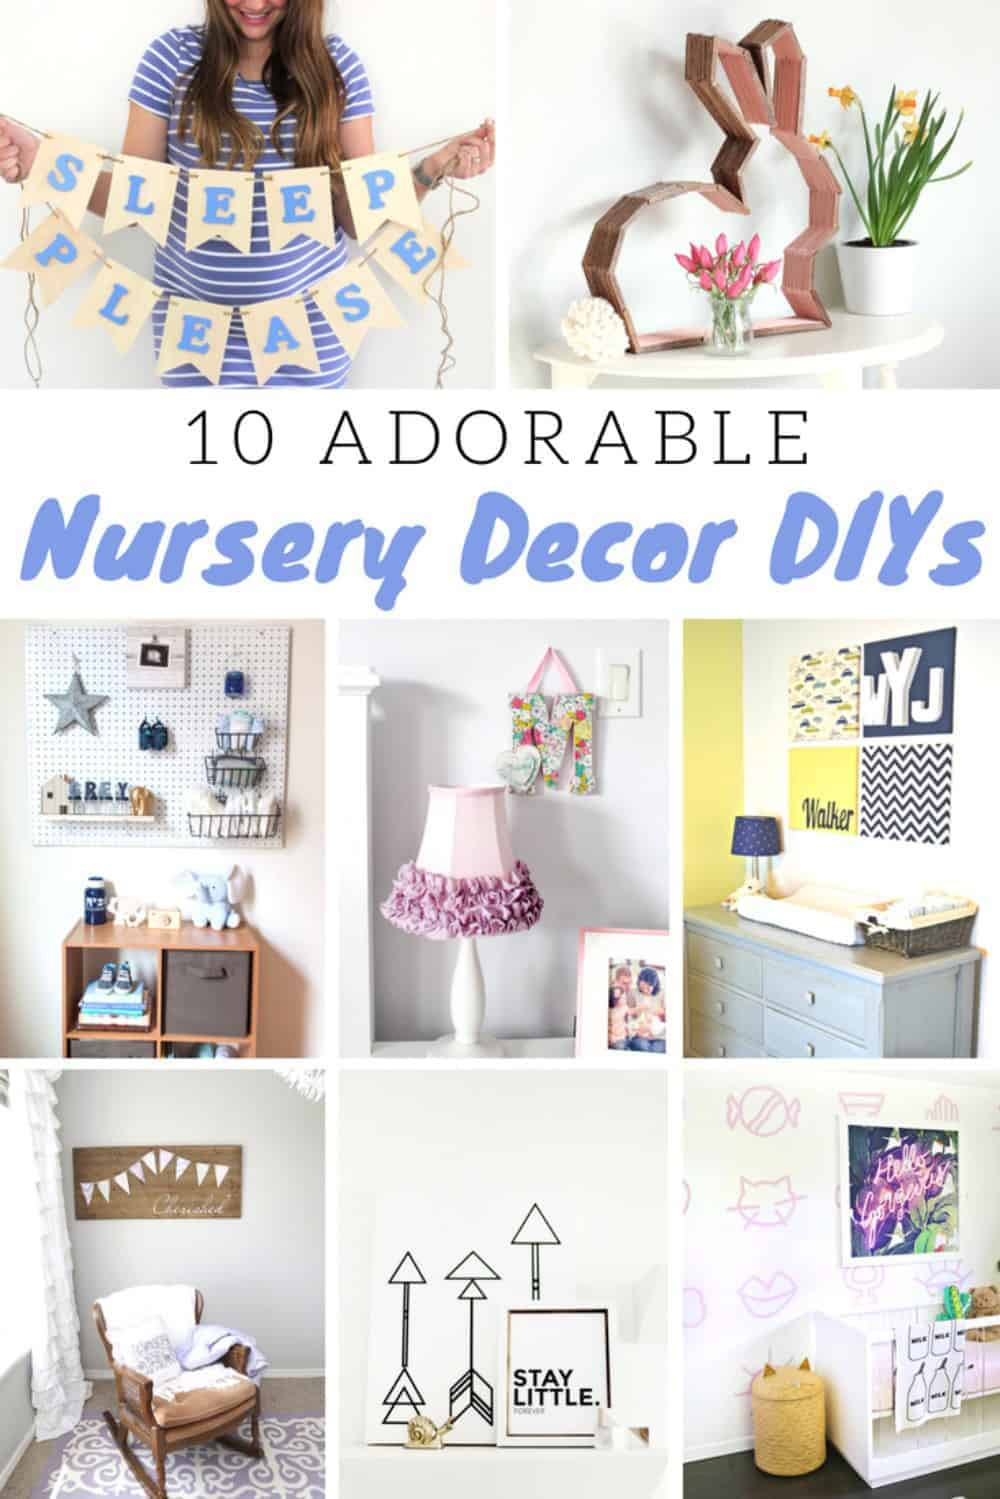 Save a Dollar with These 10 Beautiful Baby Nursery Ideas